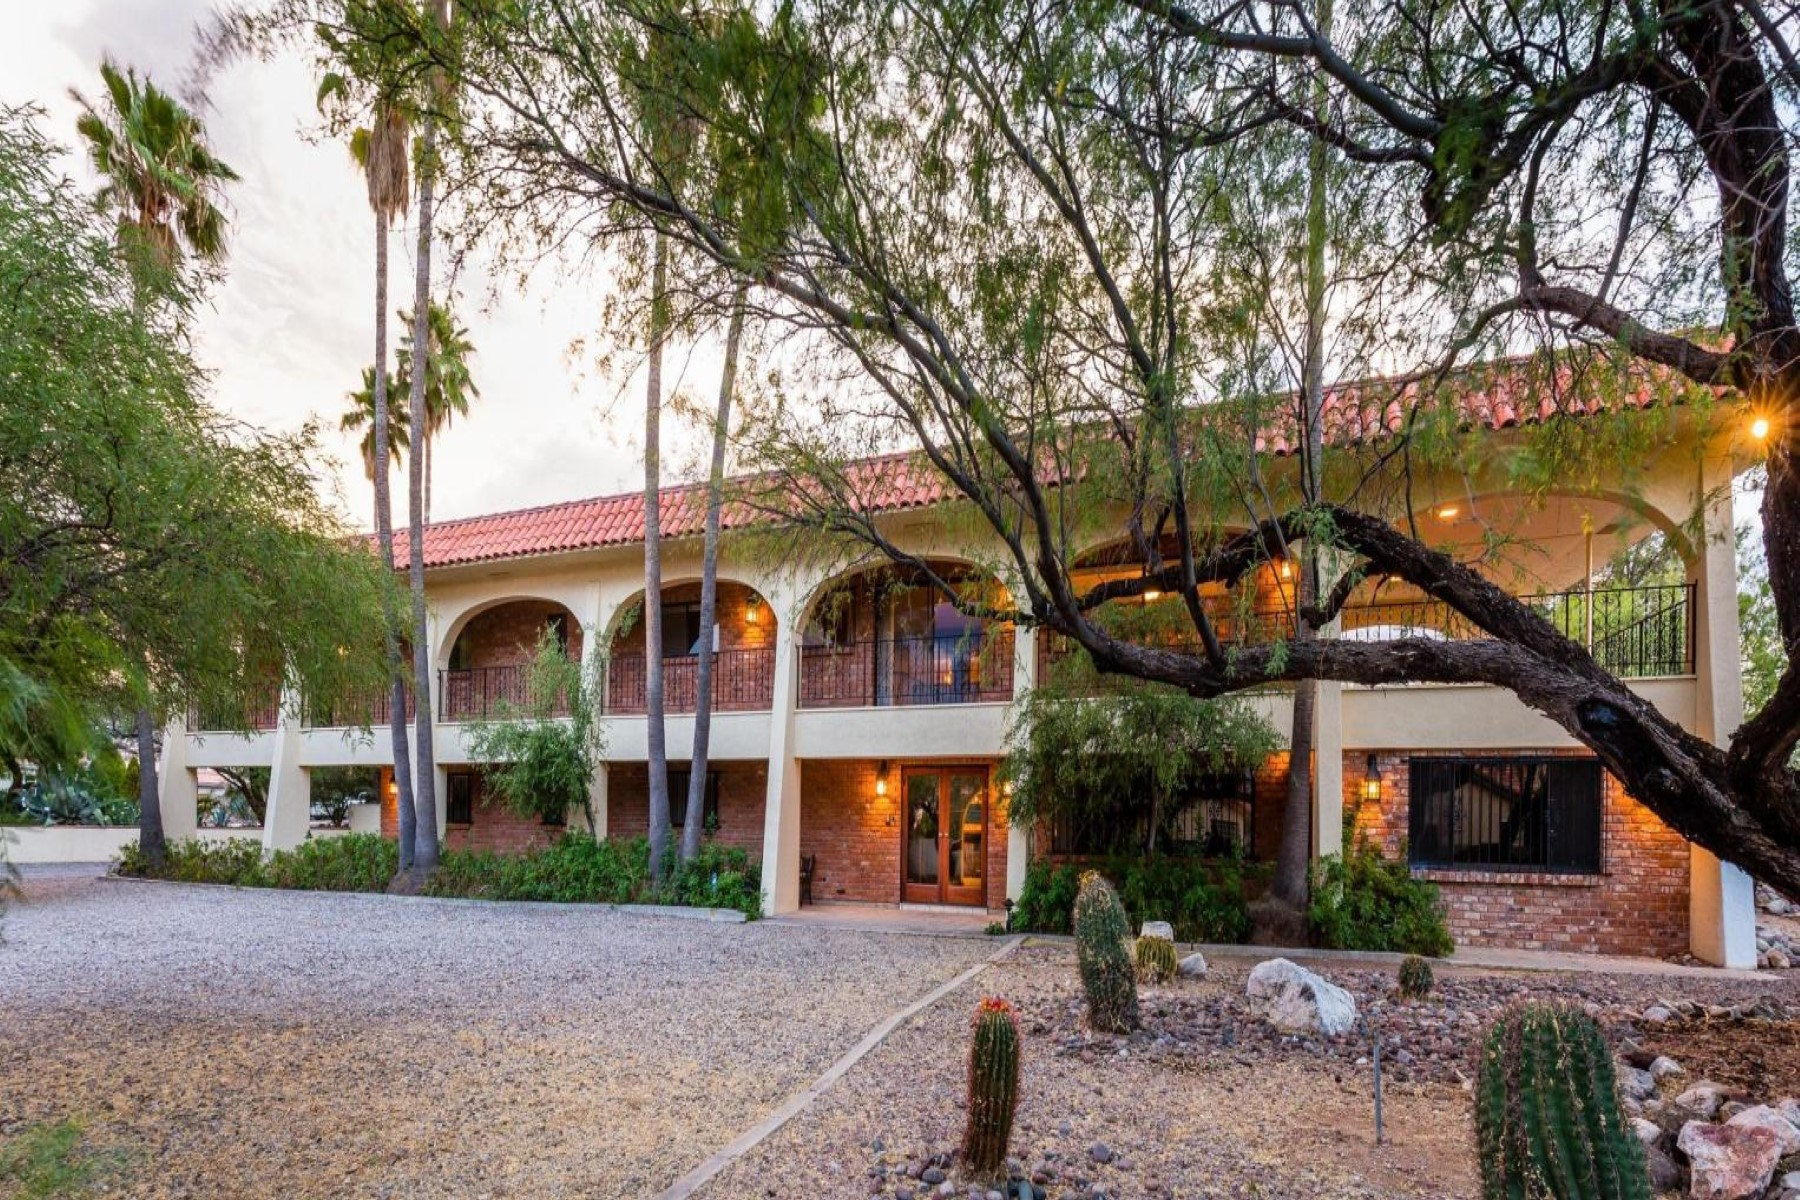 Moradia para Venda às Private gated compound on nearly 3 acres providing a secluded feel 260 S Sewell Place, Tucson, Arizona, 85748 Estados Unidos